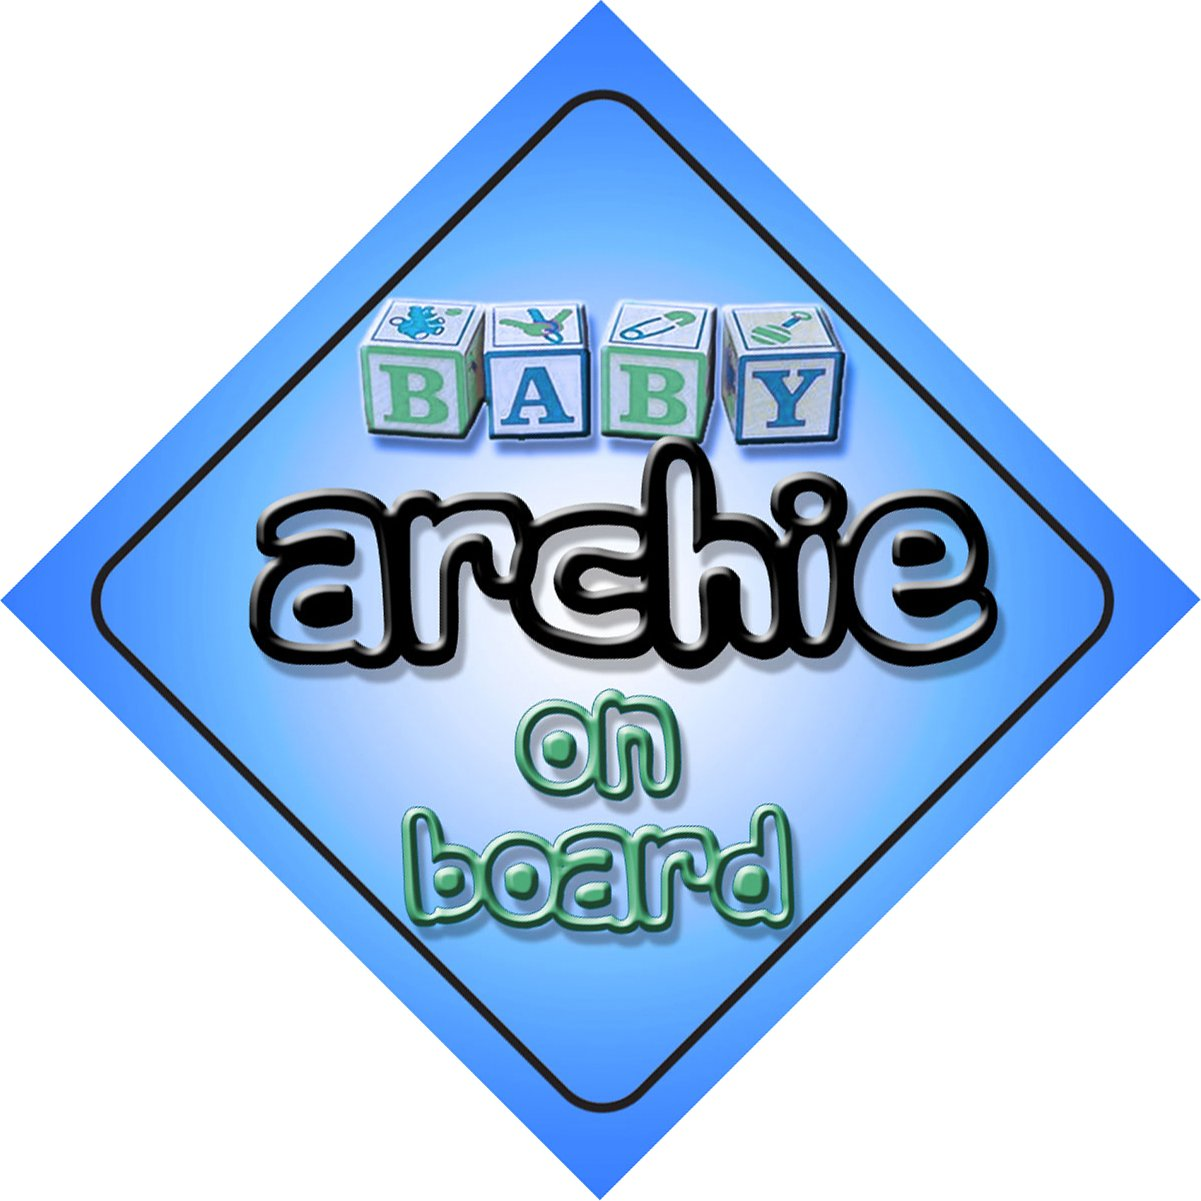 Baby Boy Archie on board novelty car sign gift / present for new child / newborn baby Quality Goods Ltd